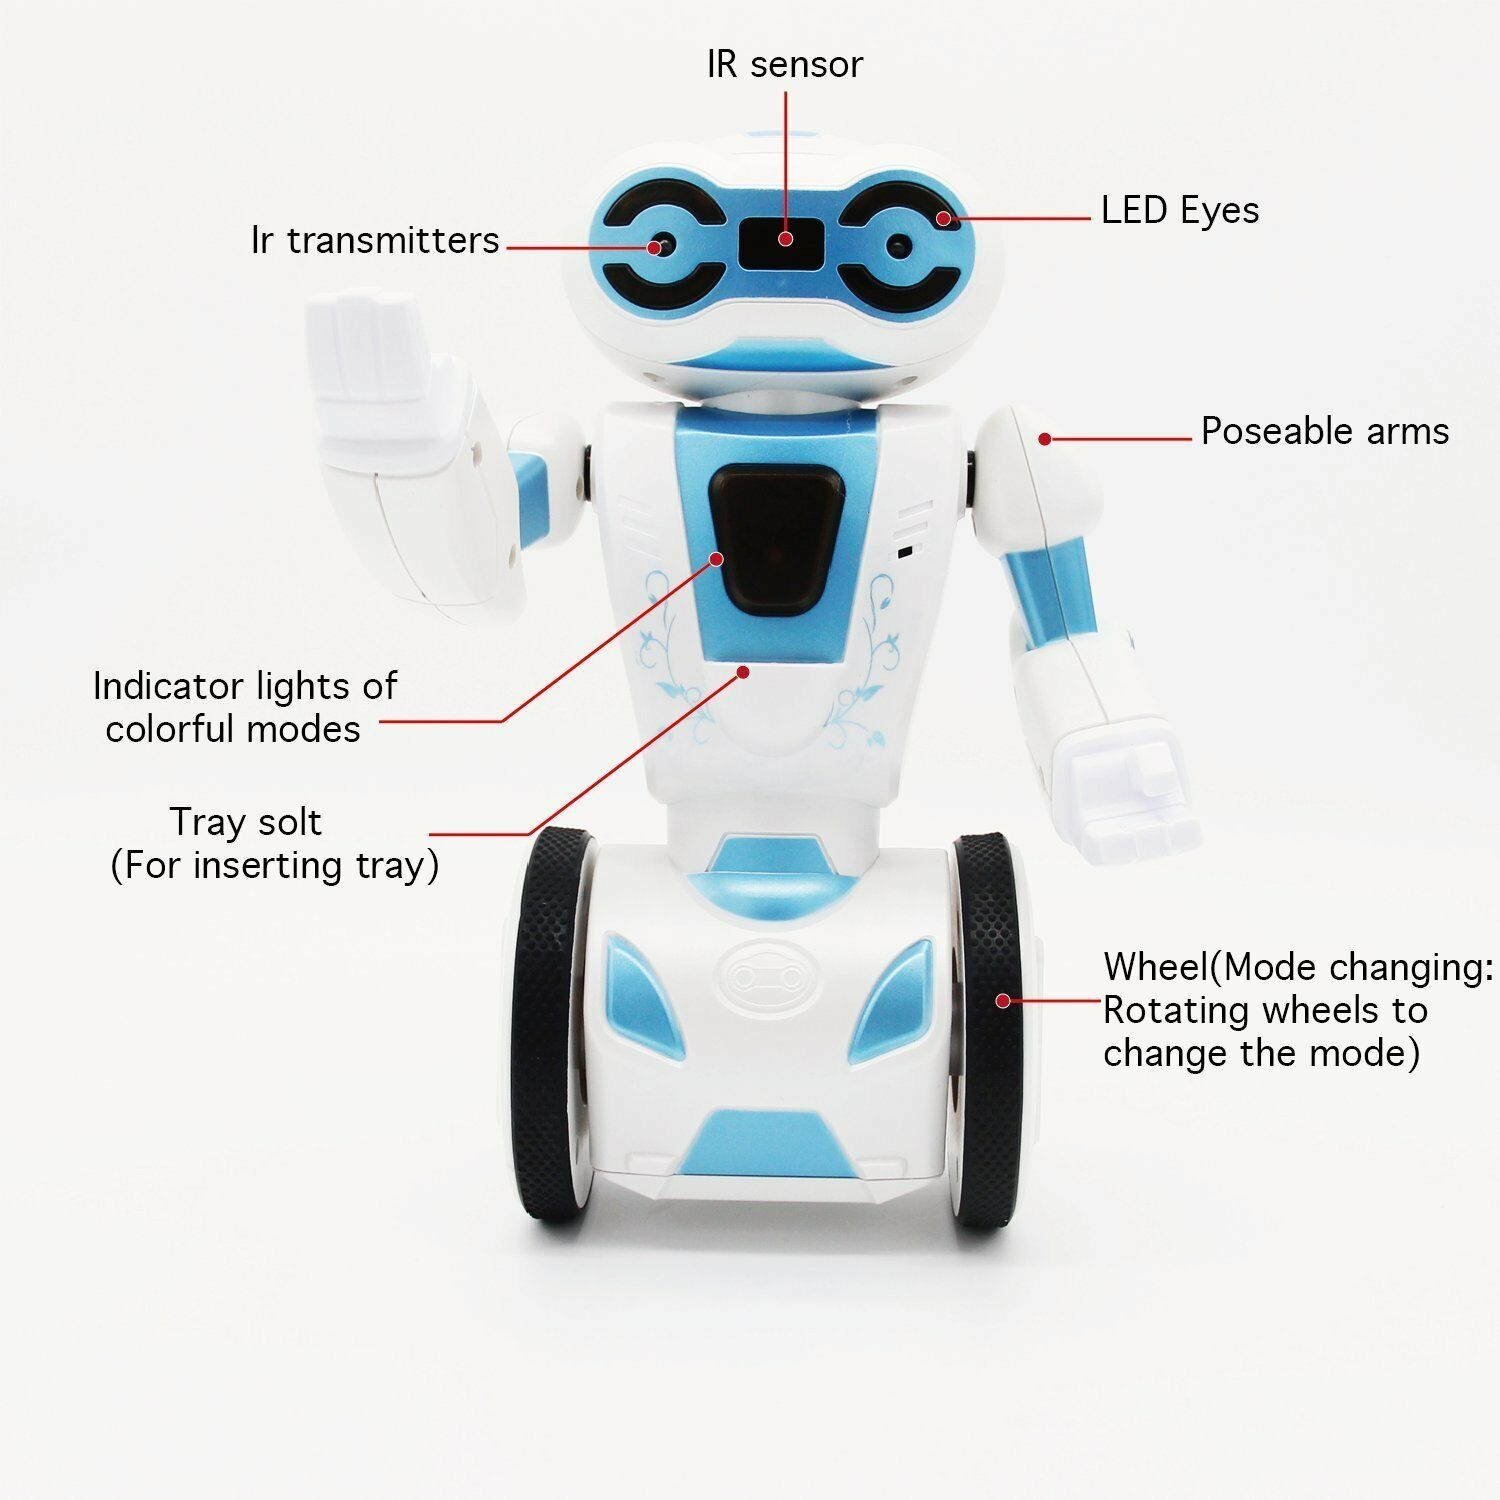 Hi-Tech 2.4GHz Wireless Remote Control Toys Smart Robot, Interactive Interactive Interactive Robot for K f3f3a8